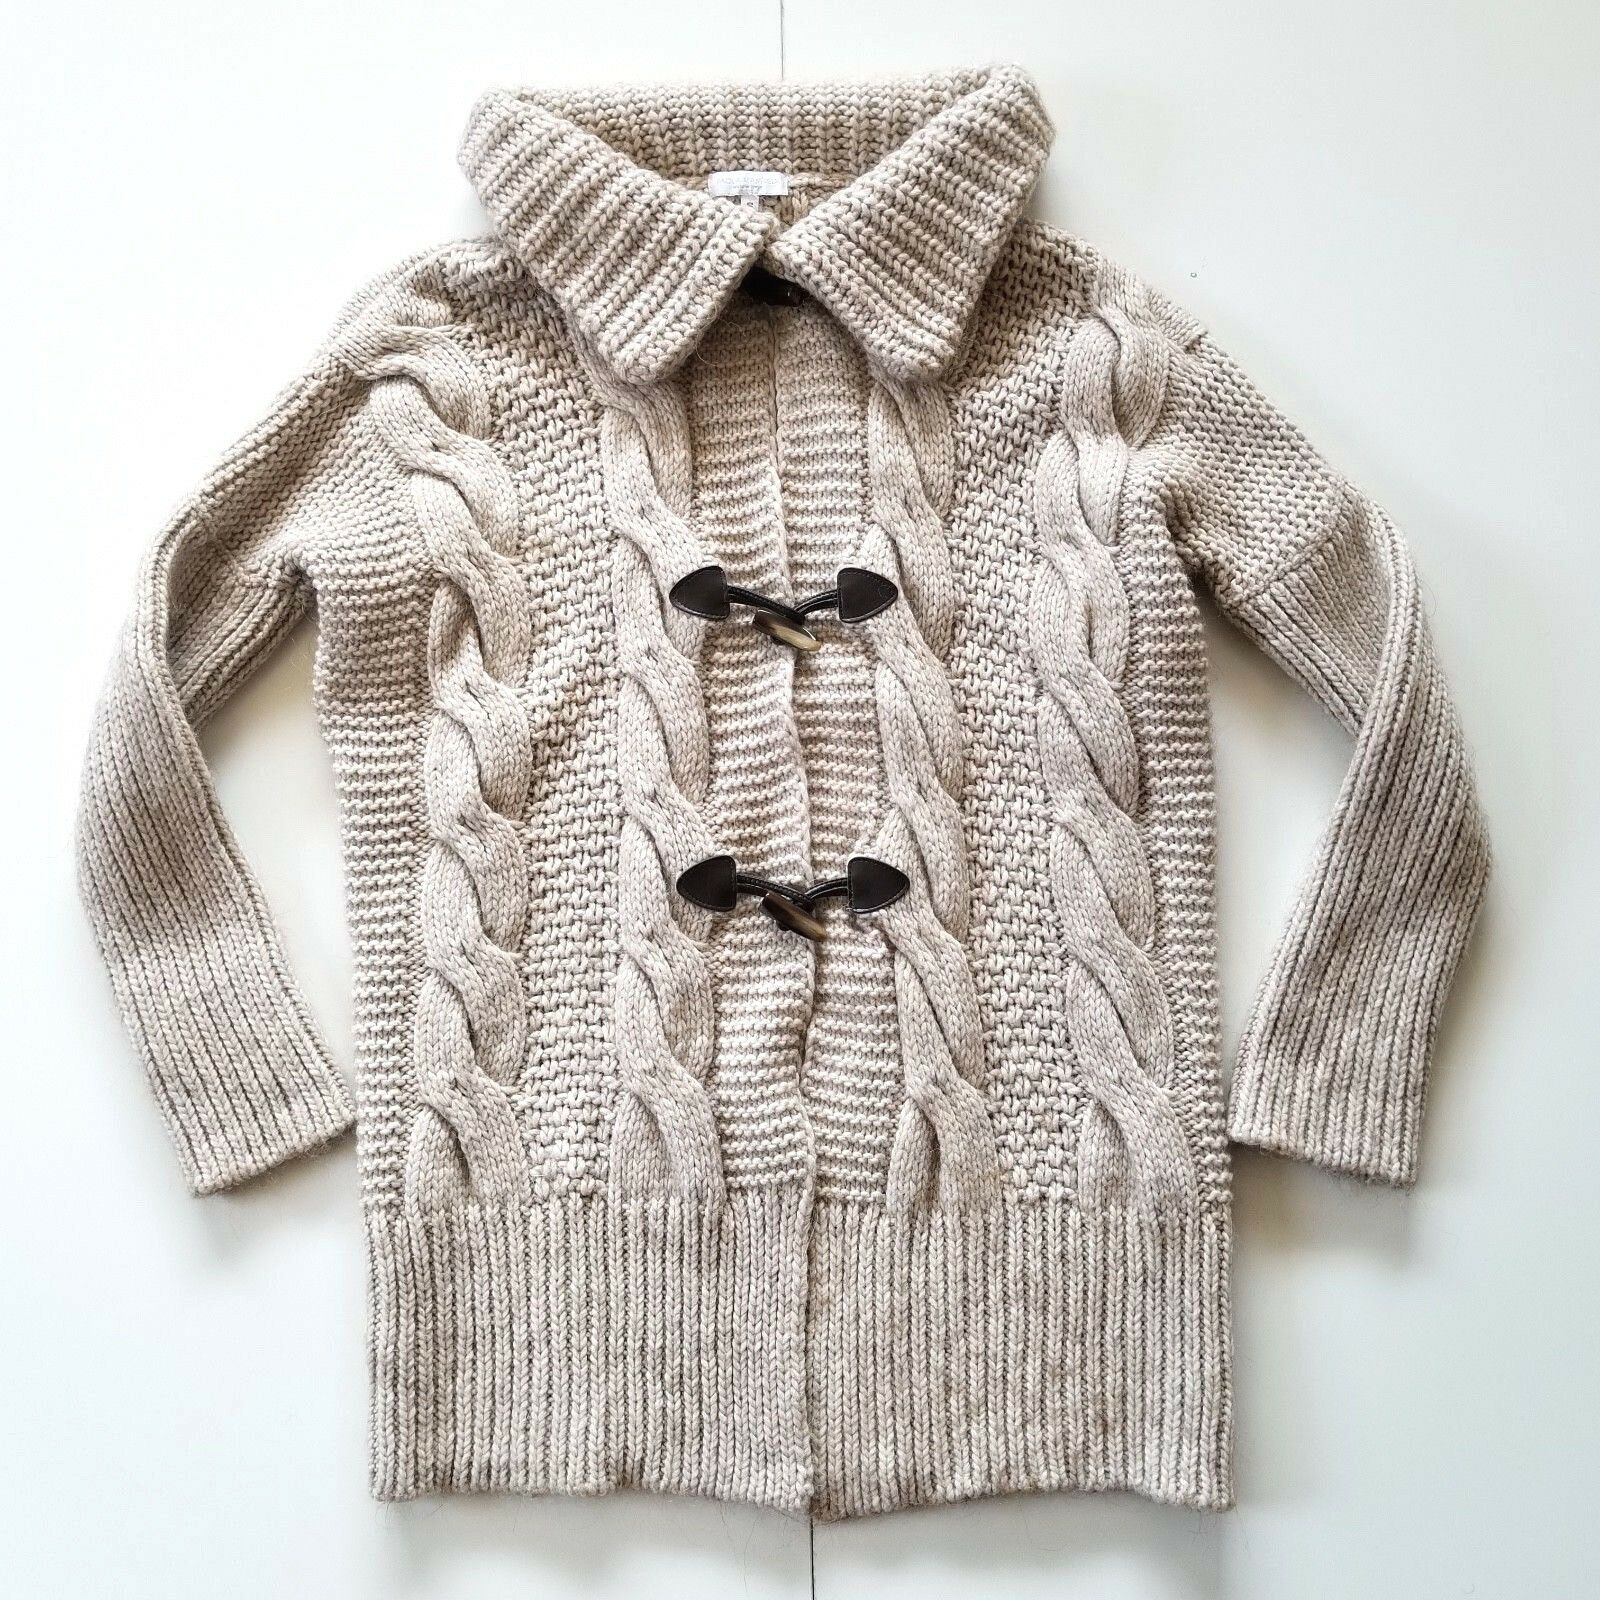 Paola Manfredi Heavy Chunky Cable Knit Cardigan Sweater S Wool Alpaca Blend Tan